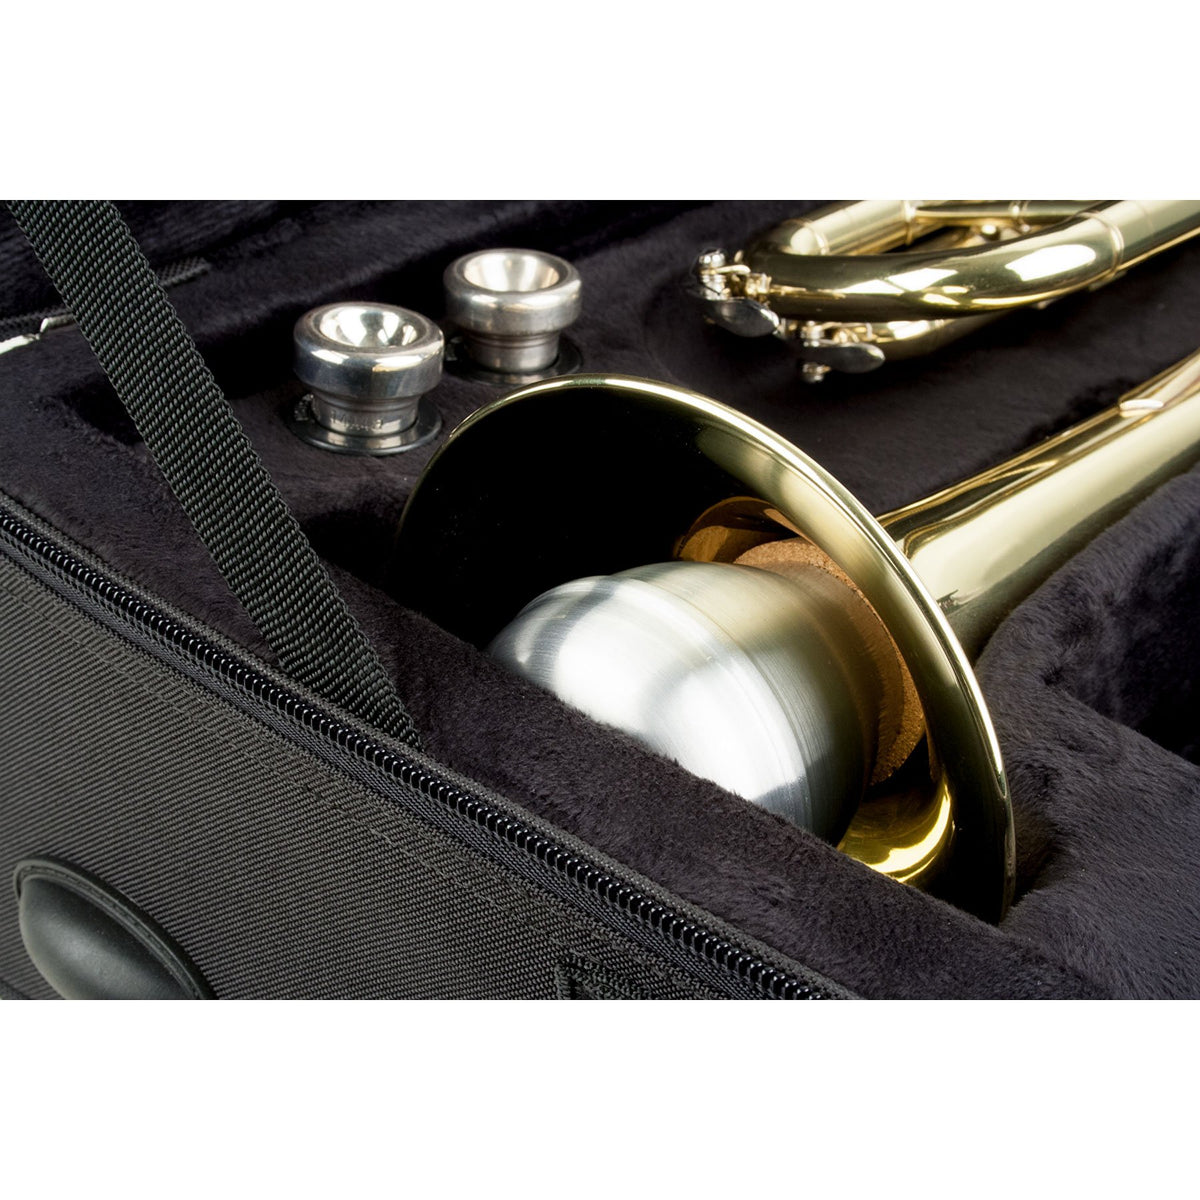 Protec - Liberty Aluminium Practice Cup Mute for Trumpet (Compact)-Mute-Protec-Music Elements